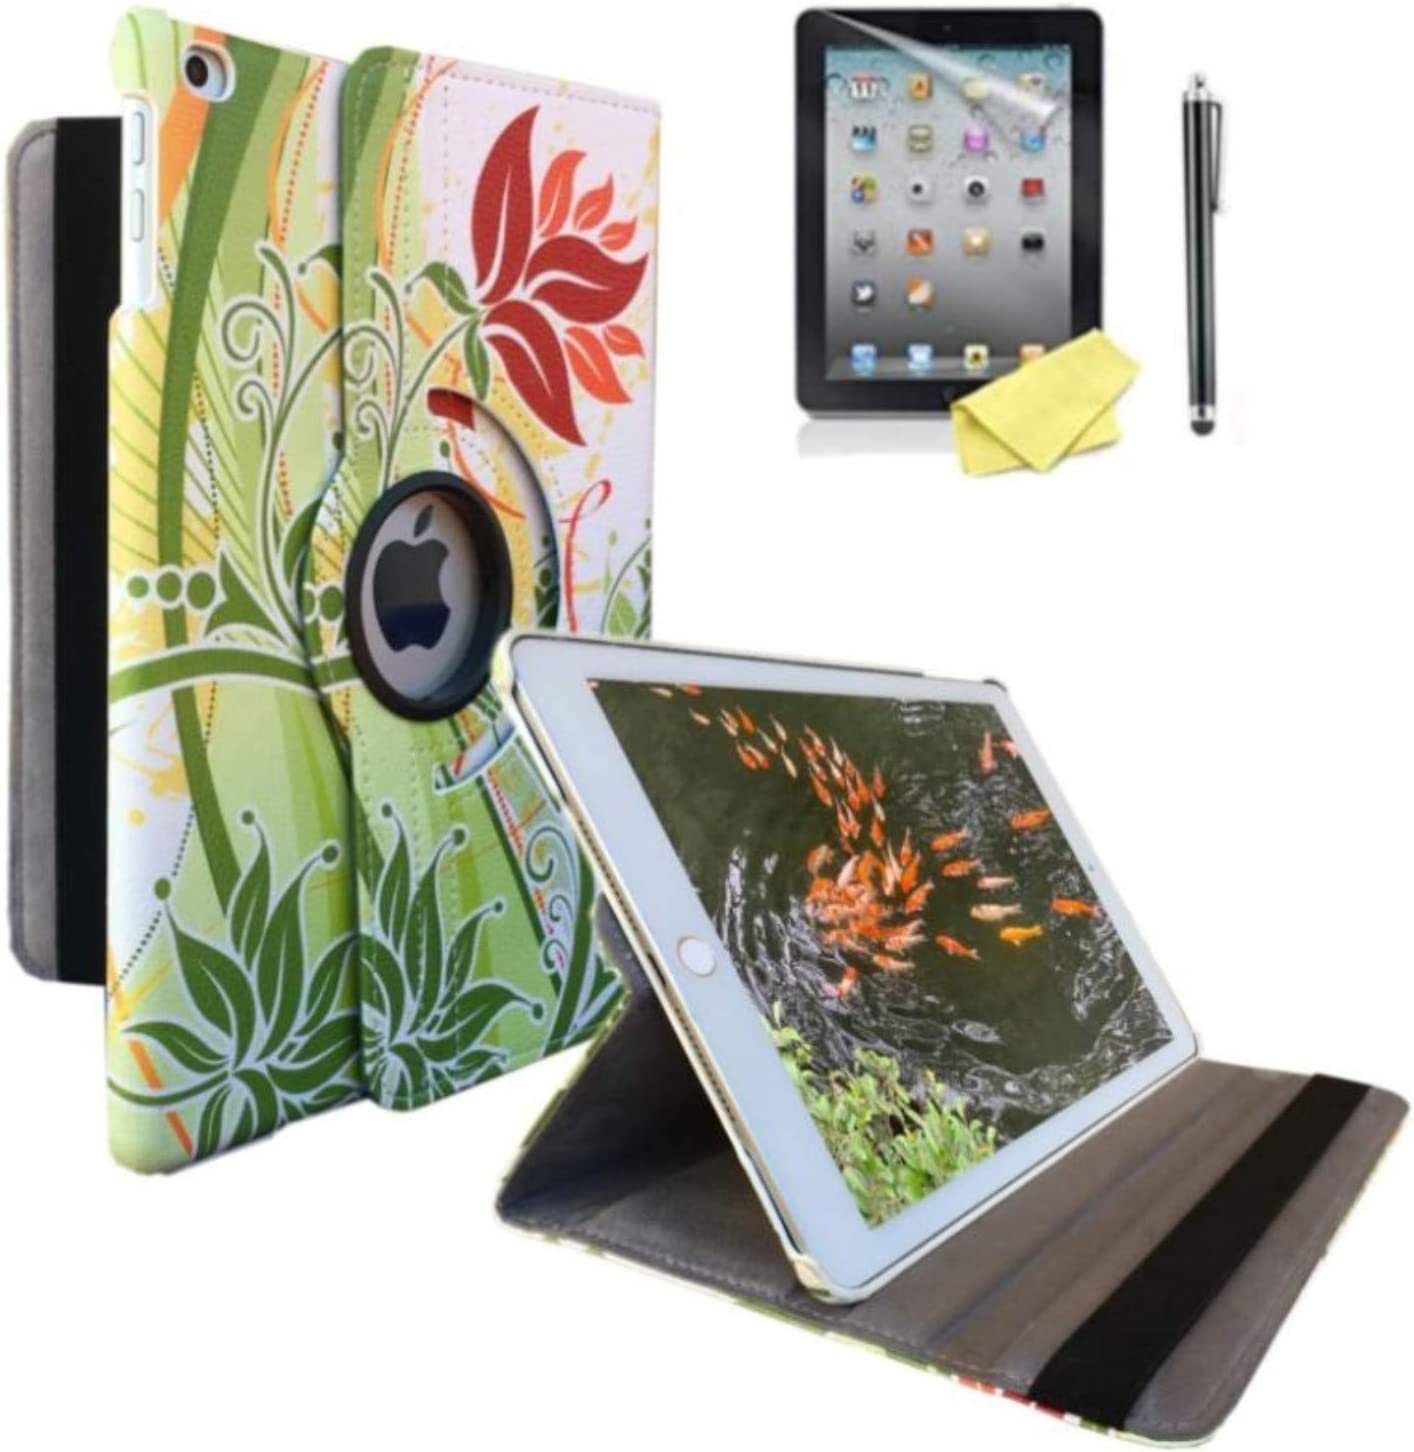 iPad Air 1st Generation case Compatible Models A1474 A1475A1476 MD785LL/A MD876LL/A 360 Rotating Stand with Wake Up/Sleep Function (Orange Flower)